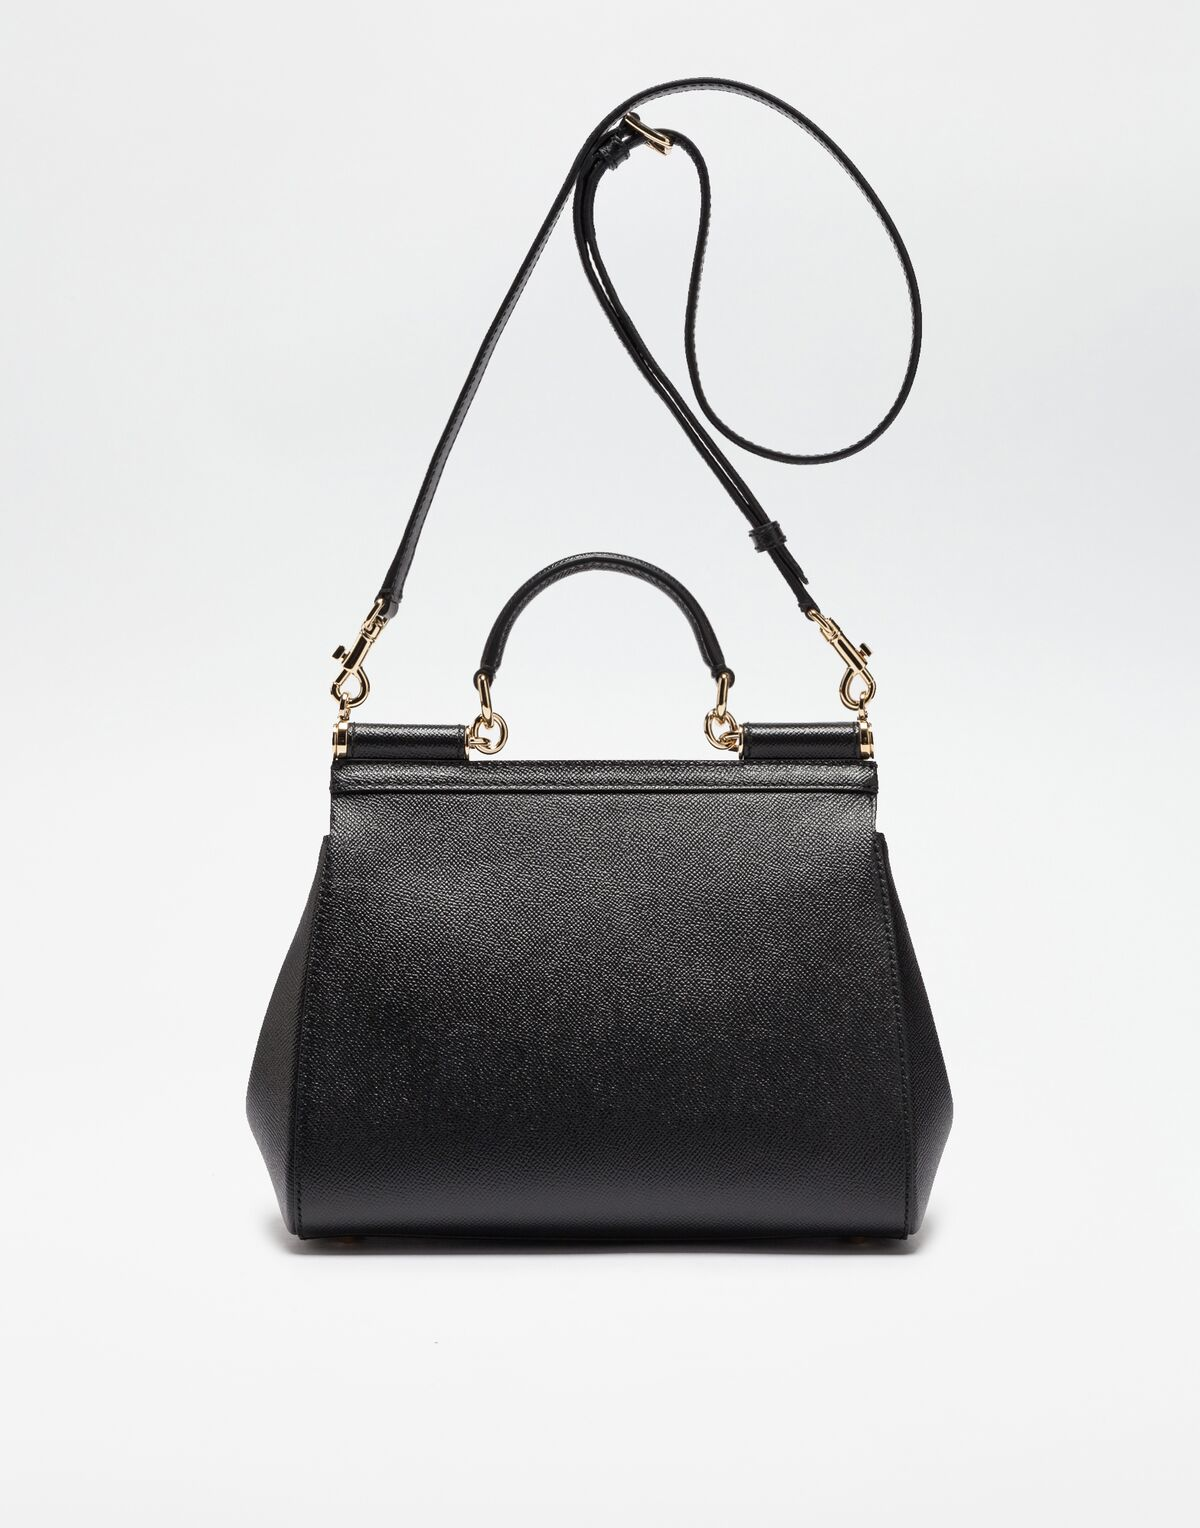 Dolce & Gabbana MEDIUM SICILY HANDBAG IN DAUPHINE LEATHER